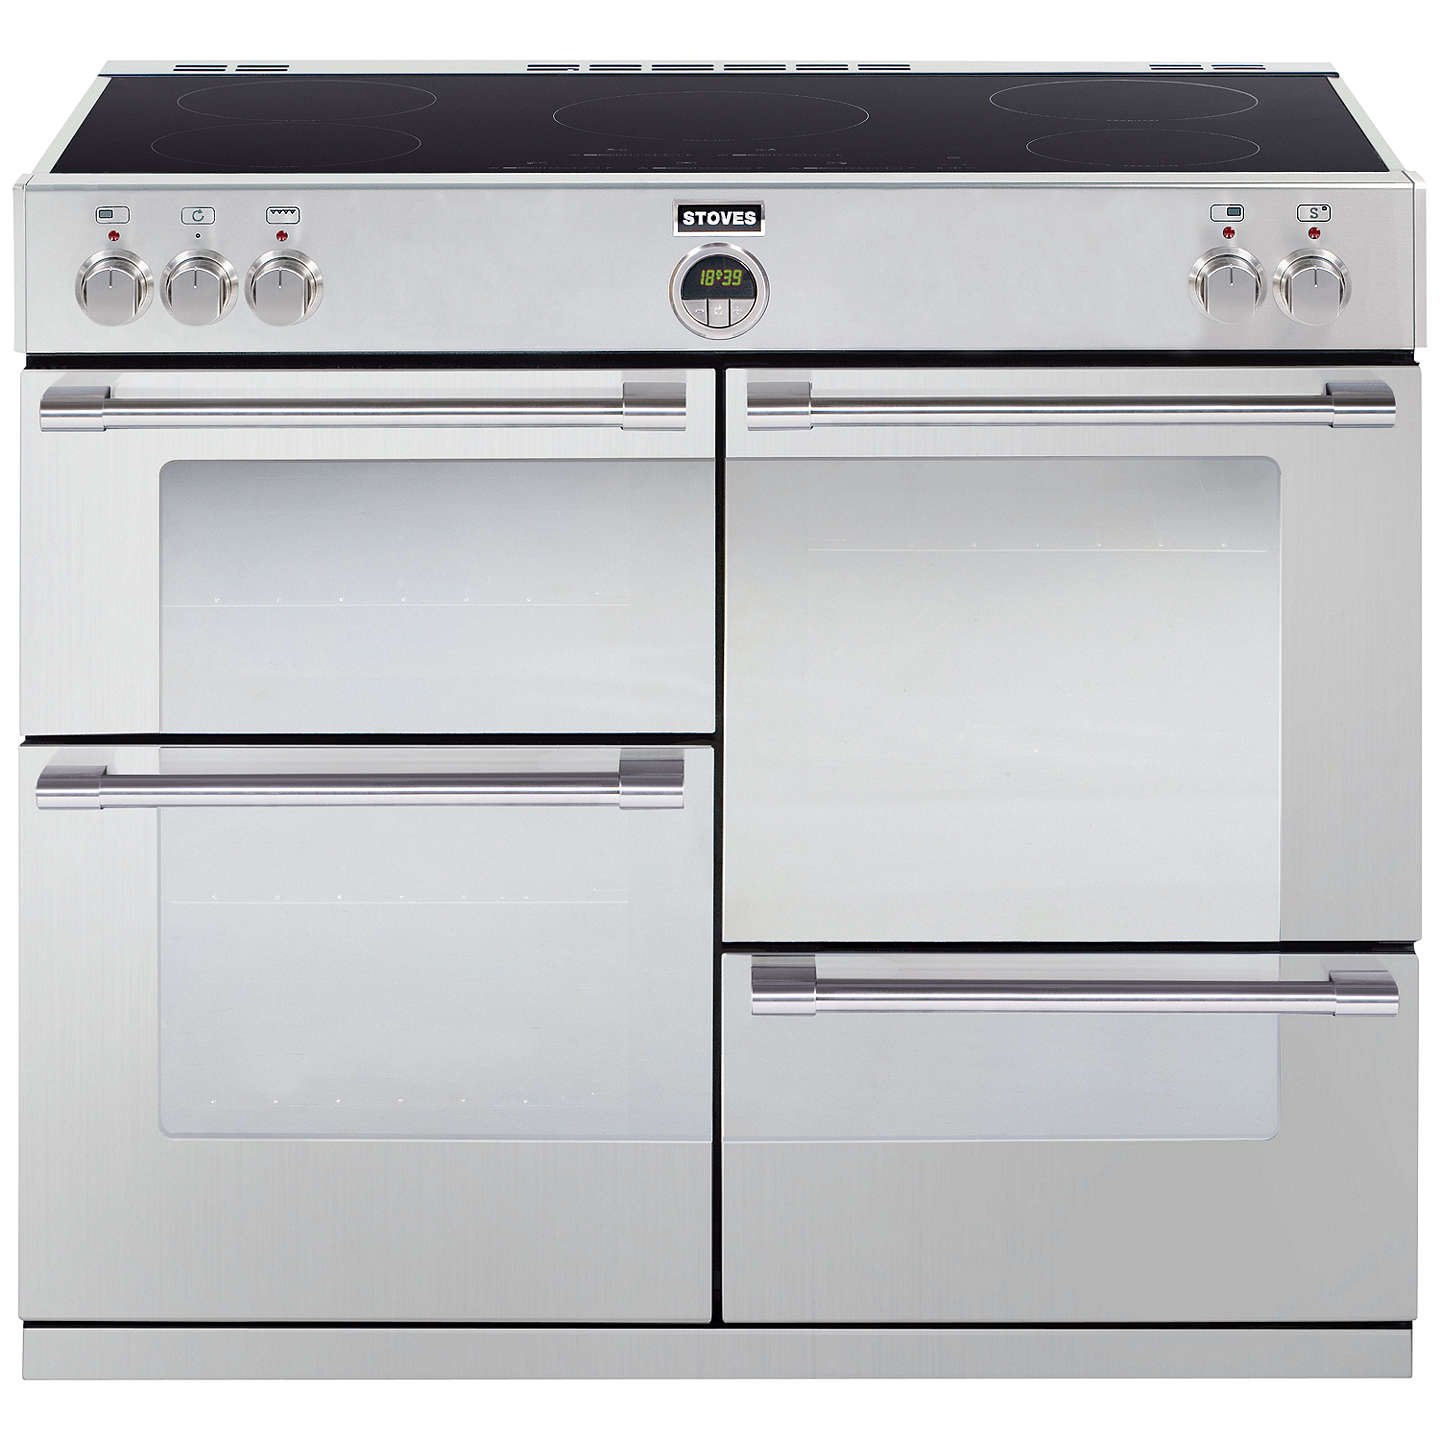 BuyStoves Sterling 1000EI Induction Hob Range Cooker, Stainless Steel Online at johnlewis.com